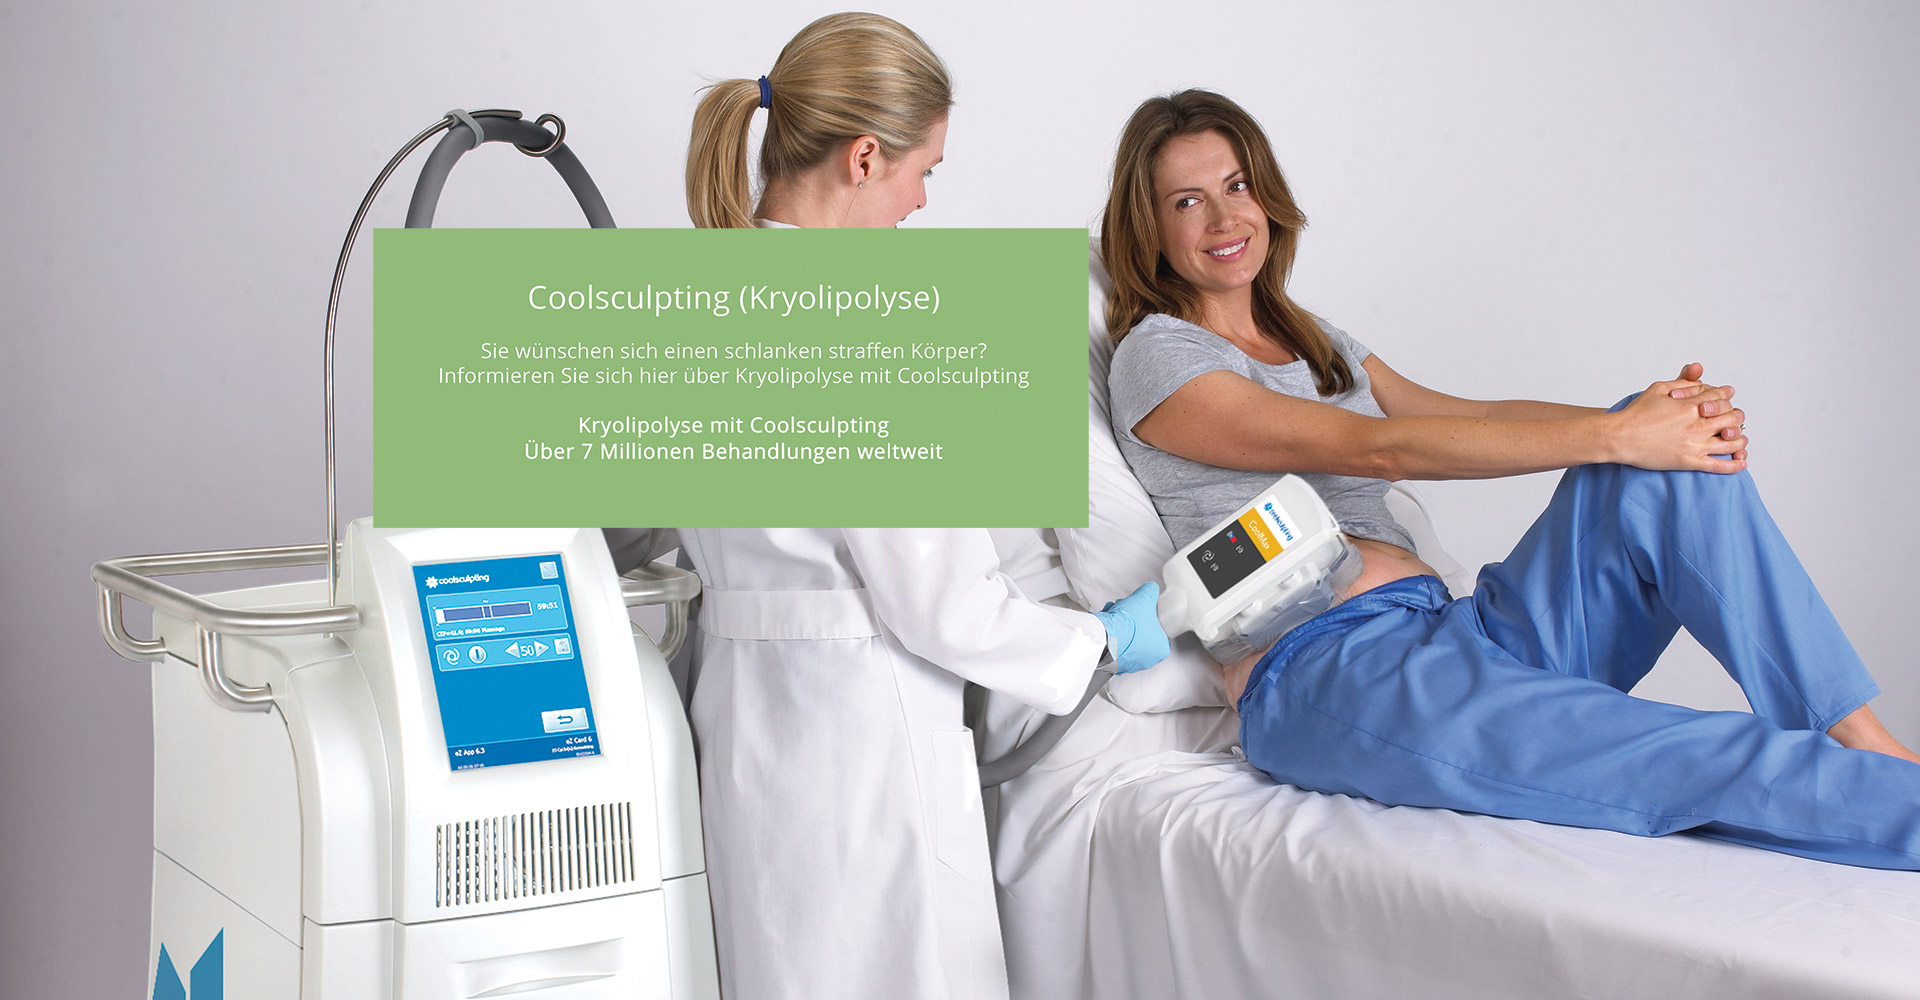 kryolipolyse_coolsculpting_muenchen